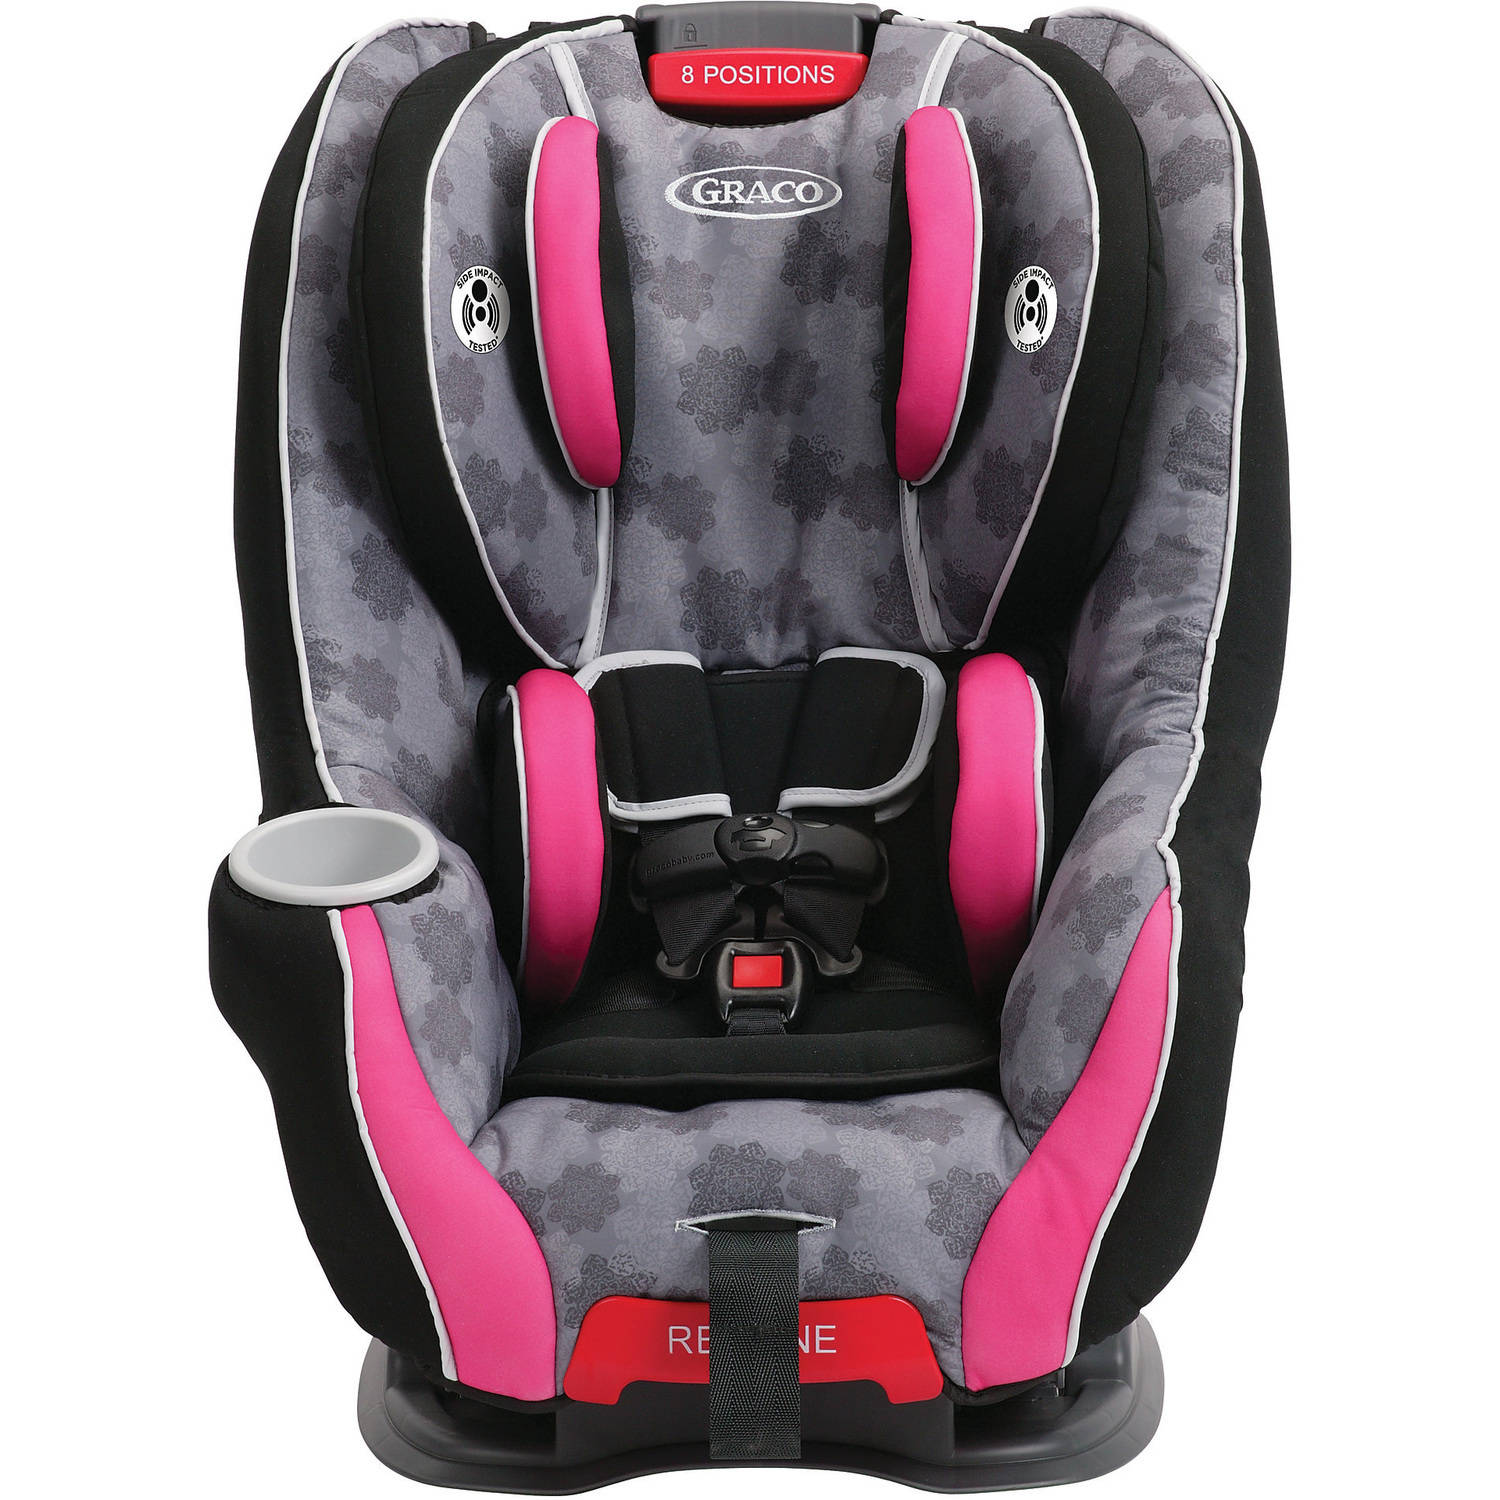 Graco Buckle Recall >> Graco Buckle Recall - 2018 - 2019 New Car Reviews by Language Kompis